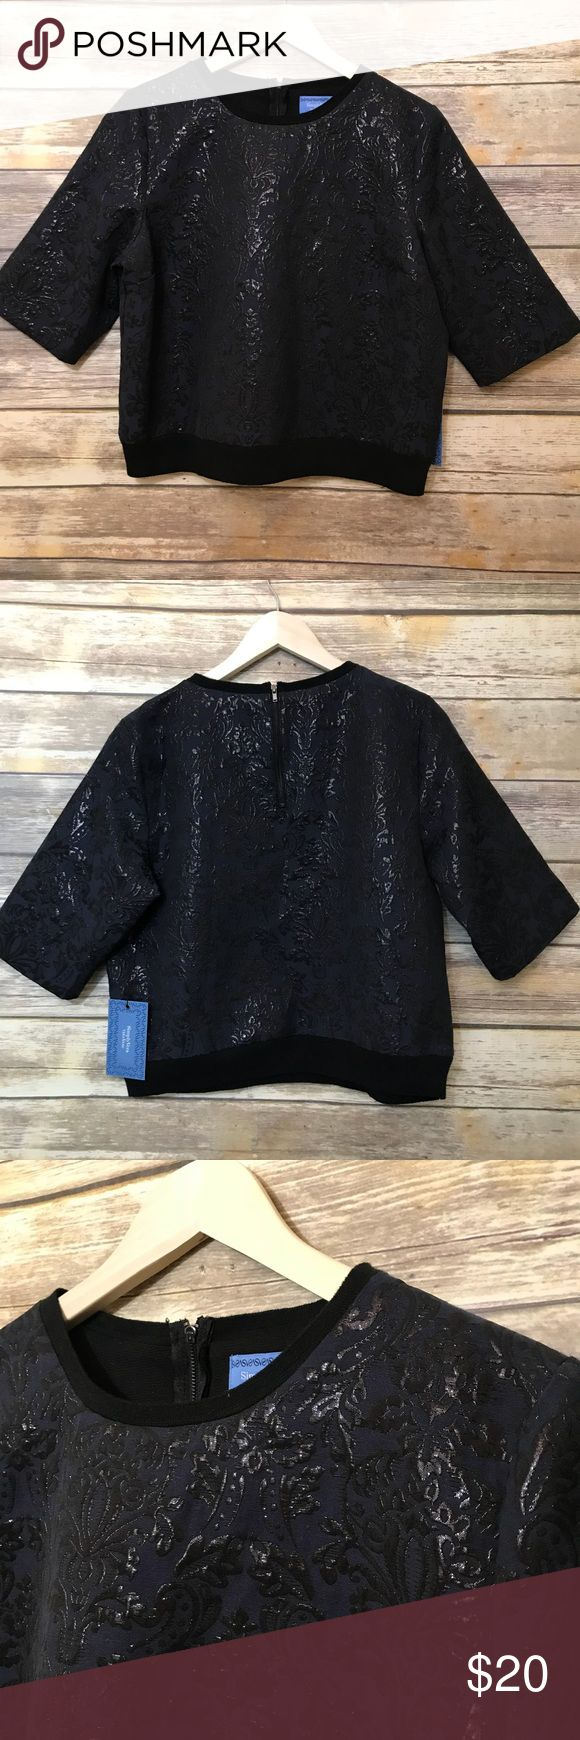 Simply Vera Wang Navy Blue with Metallic Design NWT Beautiful Top would look great with dark wash skinny jeans and leather booties Measurements Bust-42 Length-22 Simply Vera Vera Wang Tops